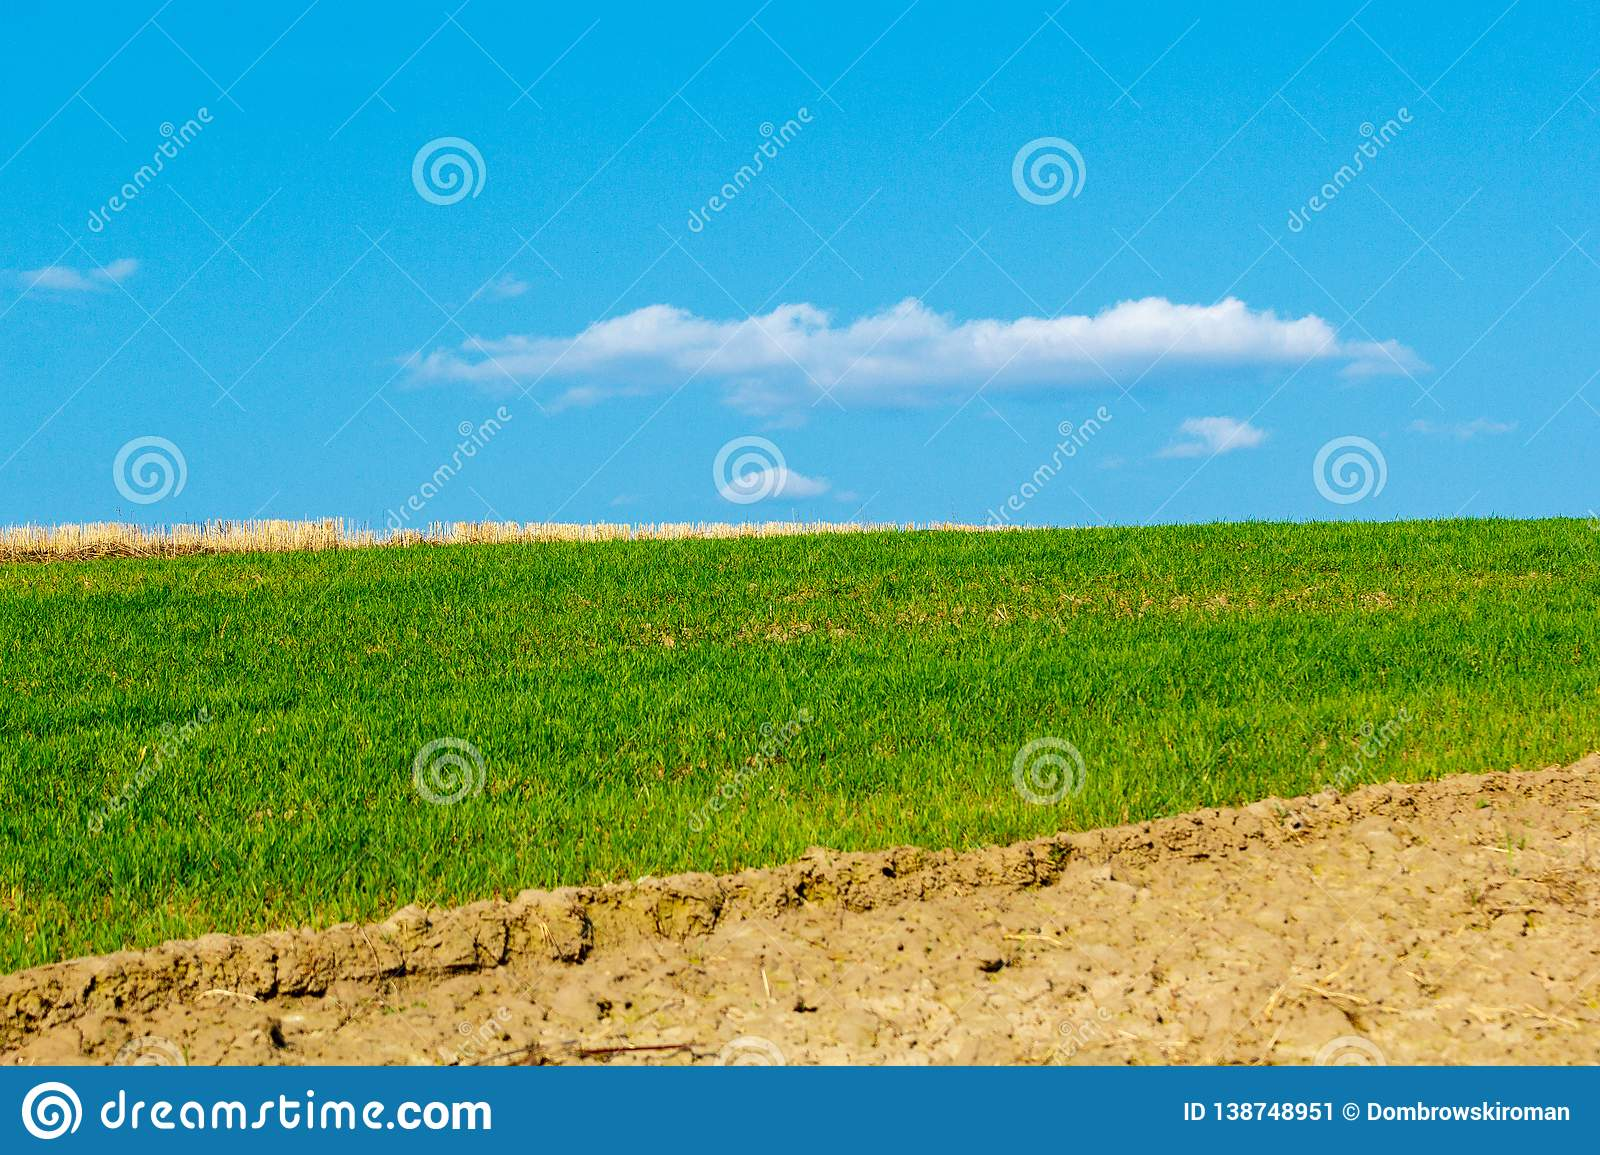 Field of Farmland Crops and Beautiful Blue Sky Above